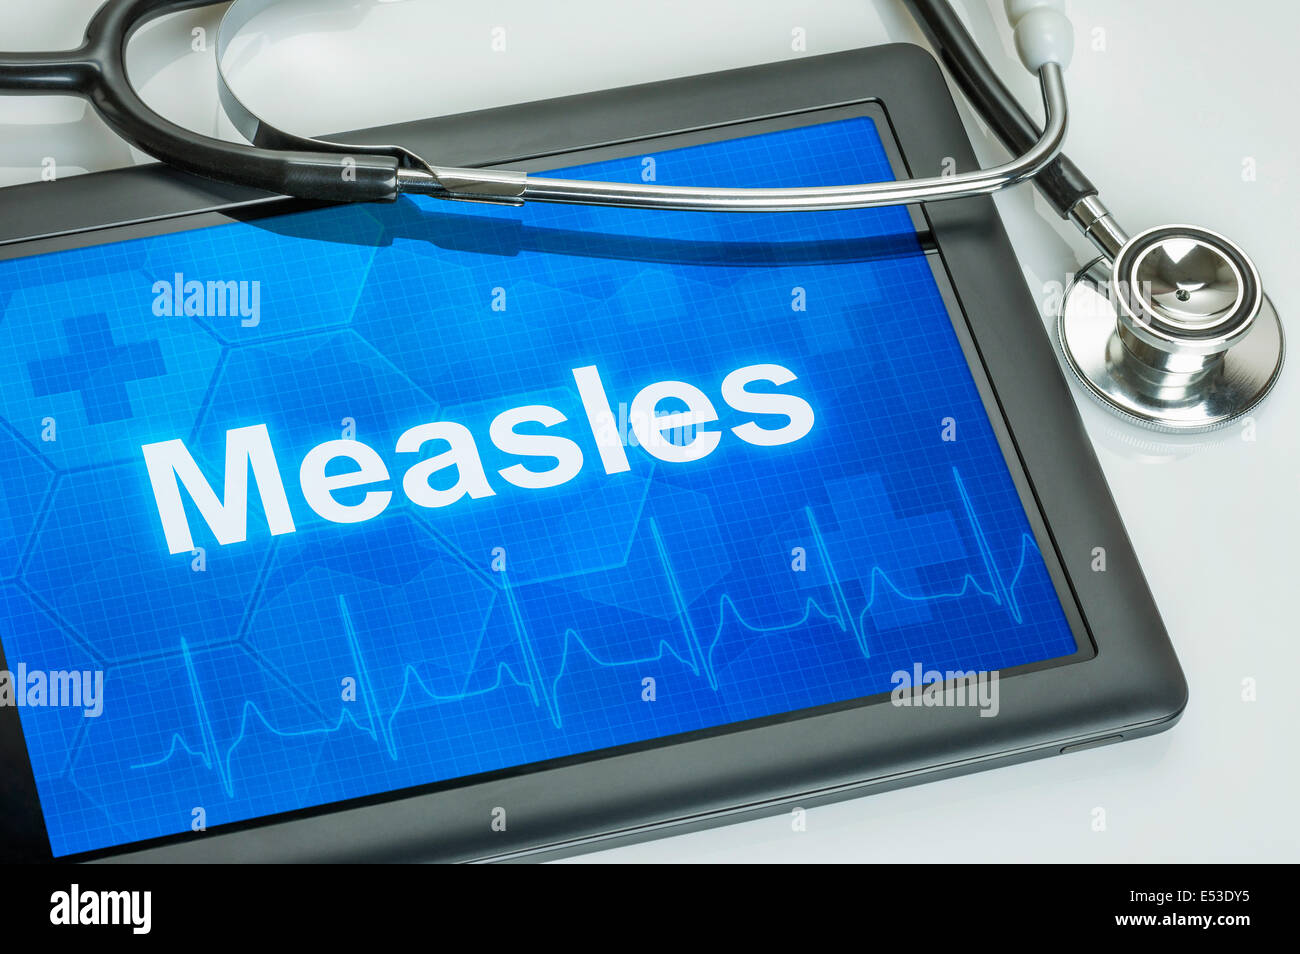 Tablet with the diagnosis Measles on the display - Stock Image